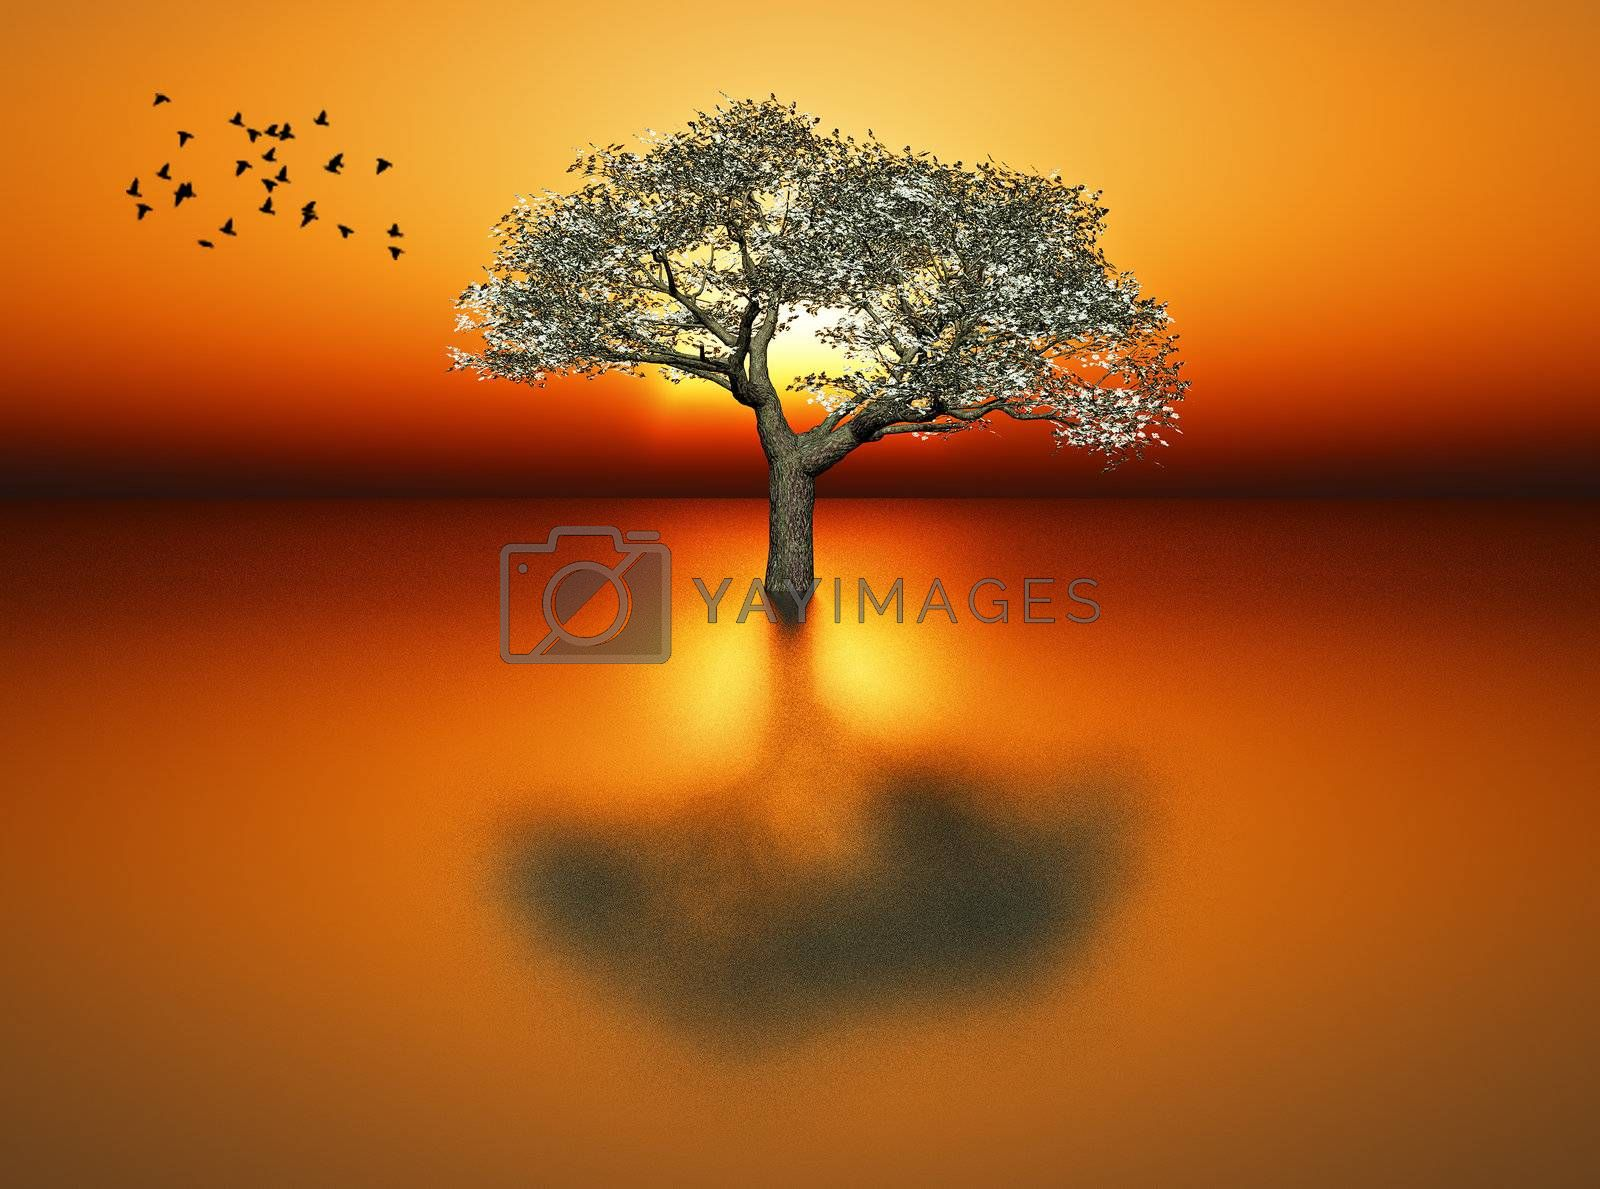 a tree with a sunrise in the background